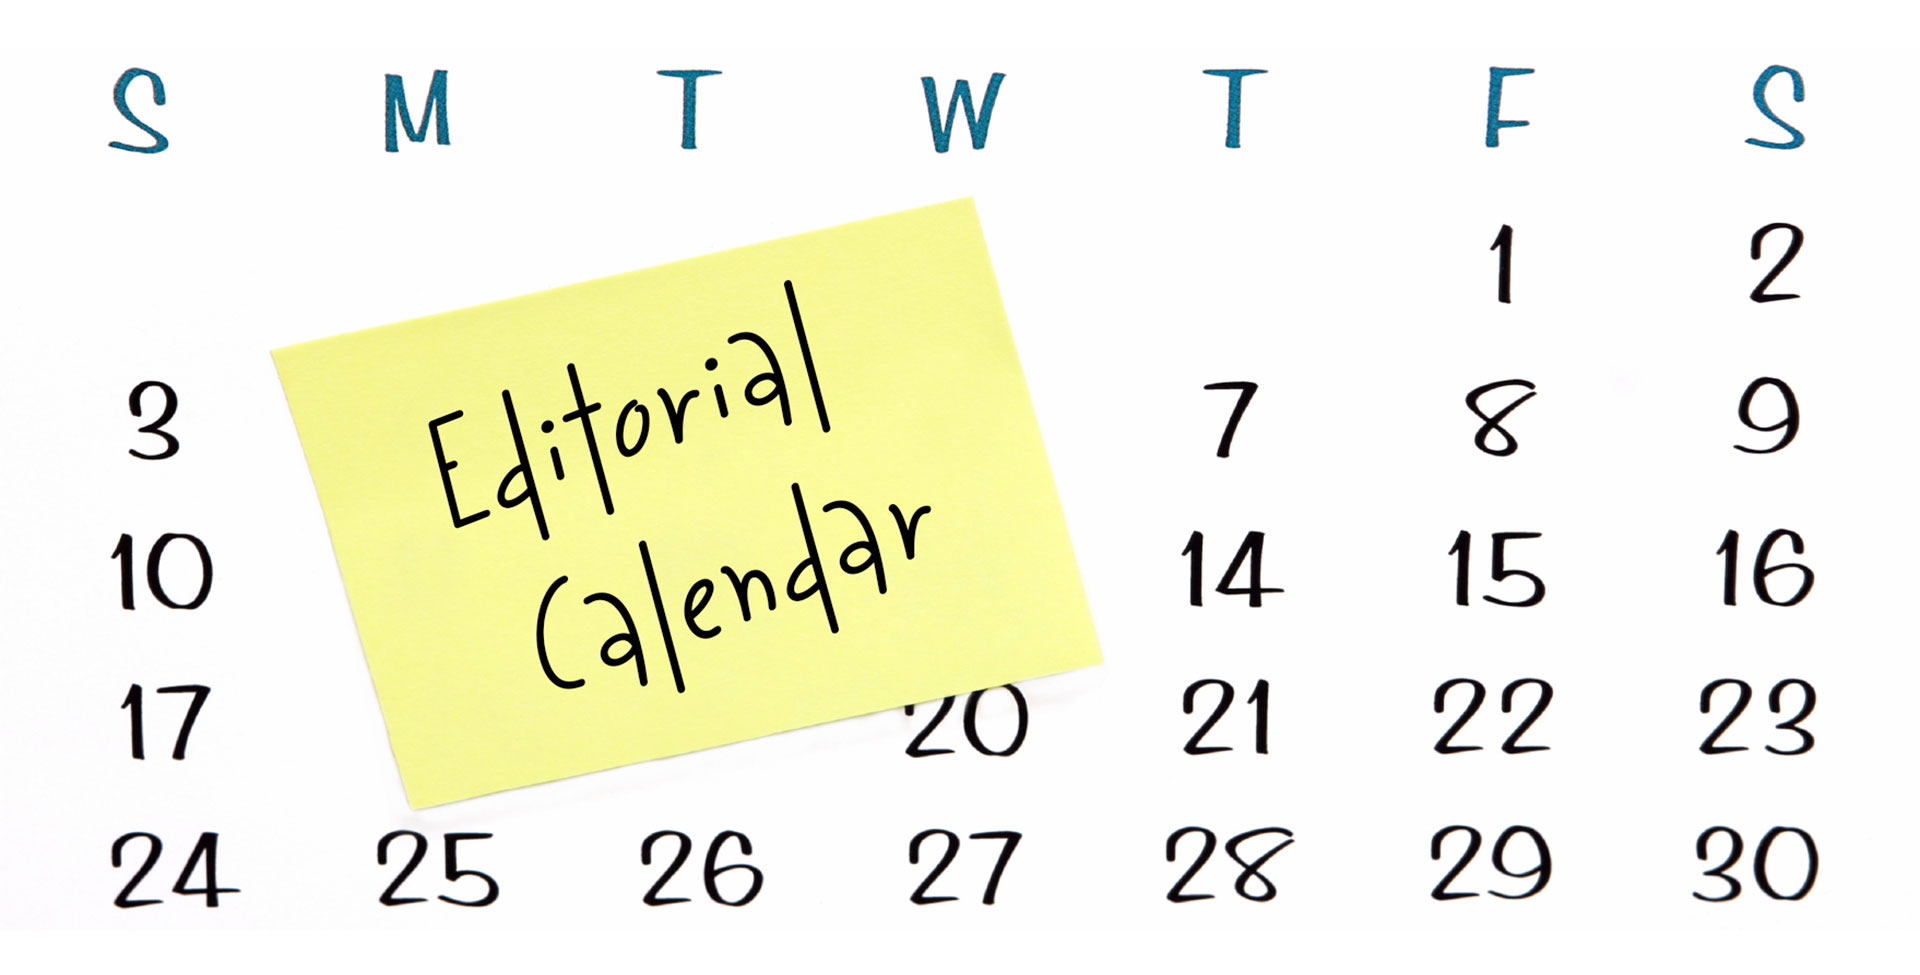 editorial calendar illustration